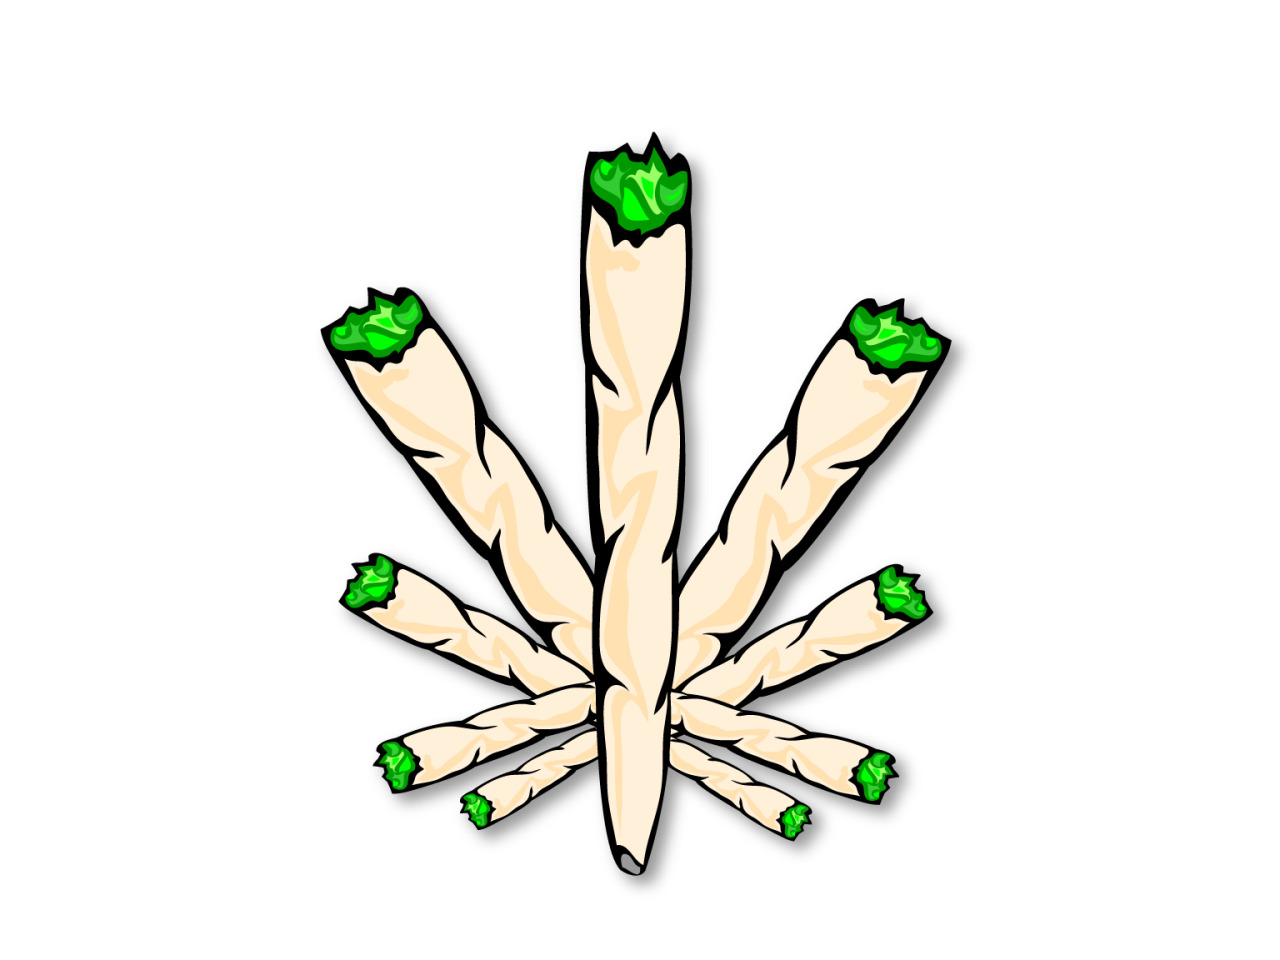 Drawn pot plant joint Graphics Weed 420